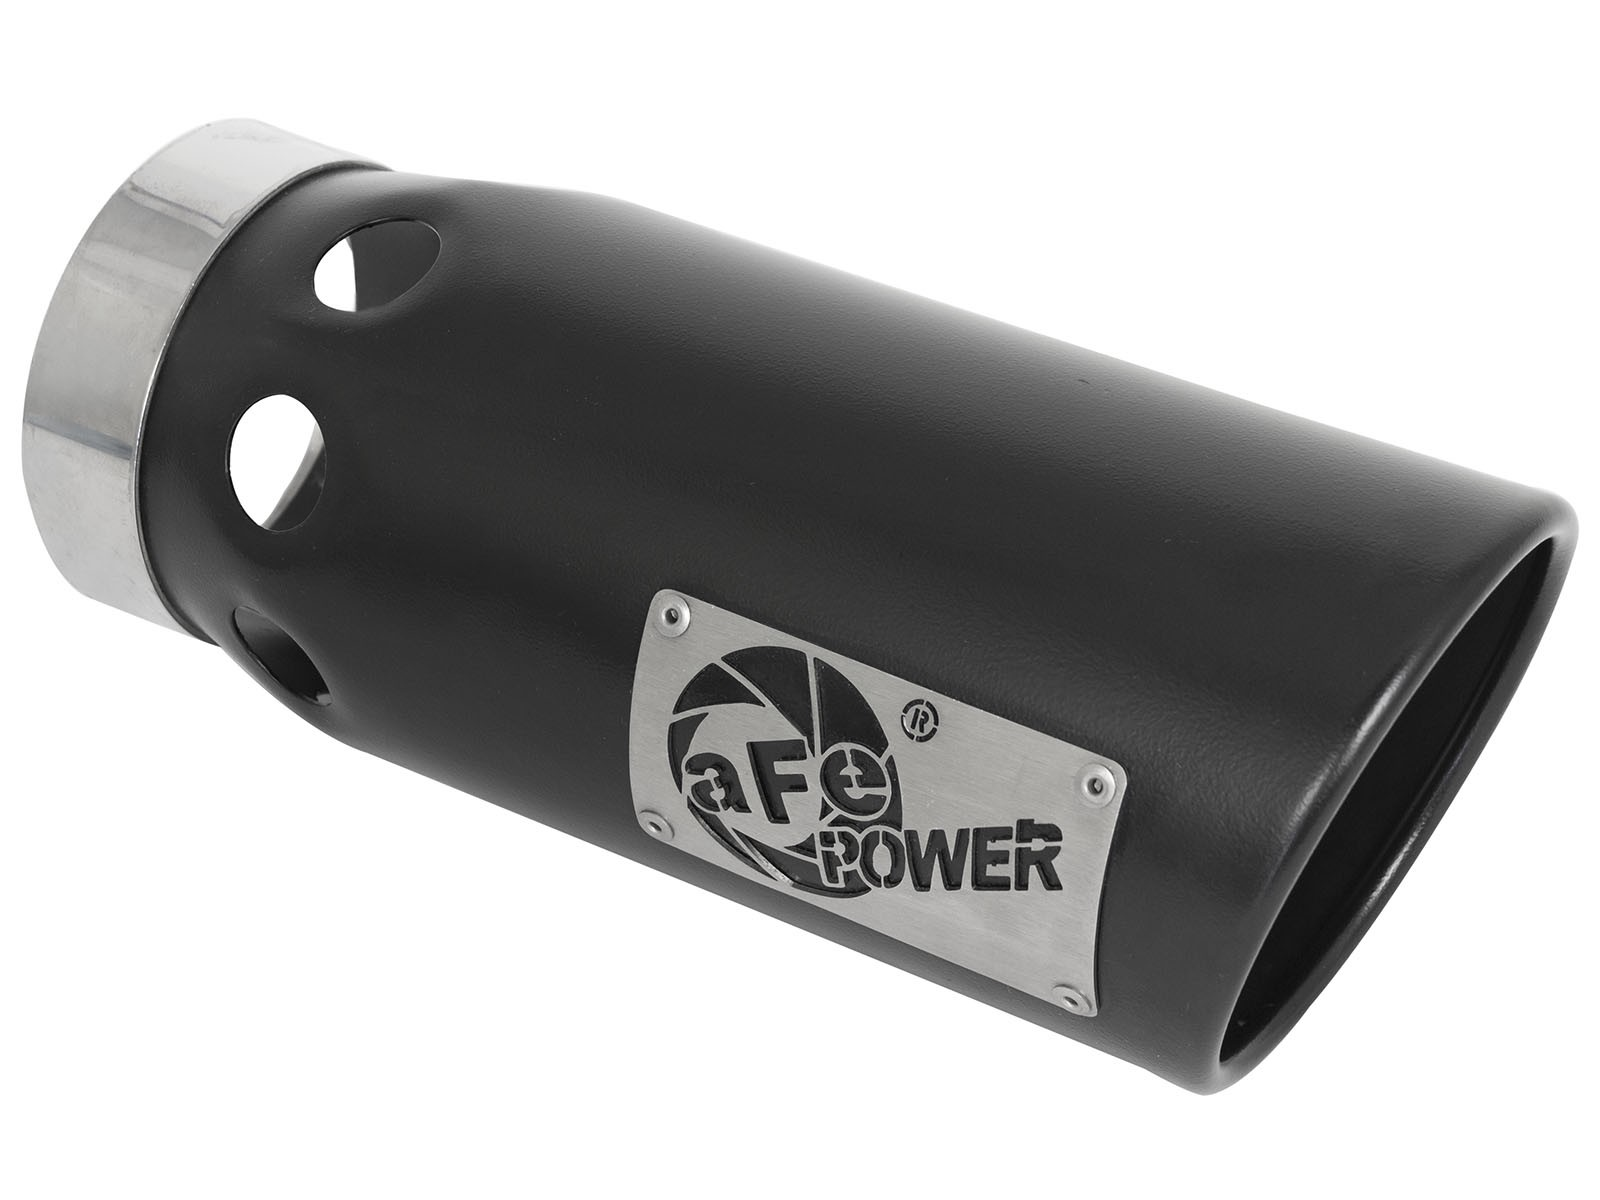 "aFe POWER 49T50601-B161 MACH Force-Xp 5"" 409 Stainless Steel Intercooled Exhaust Tip"